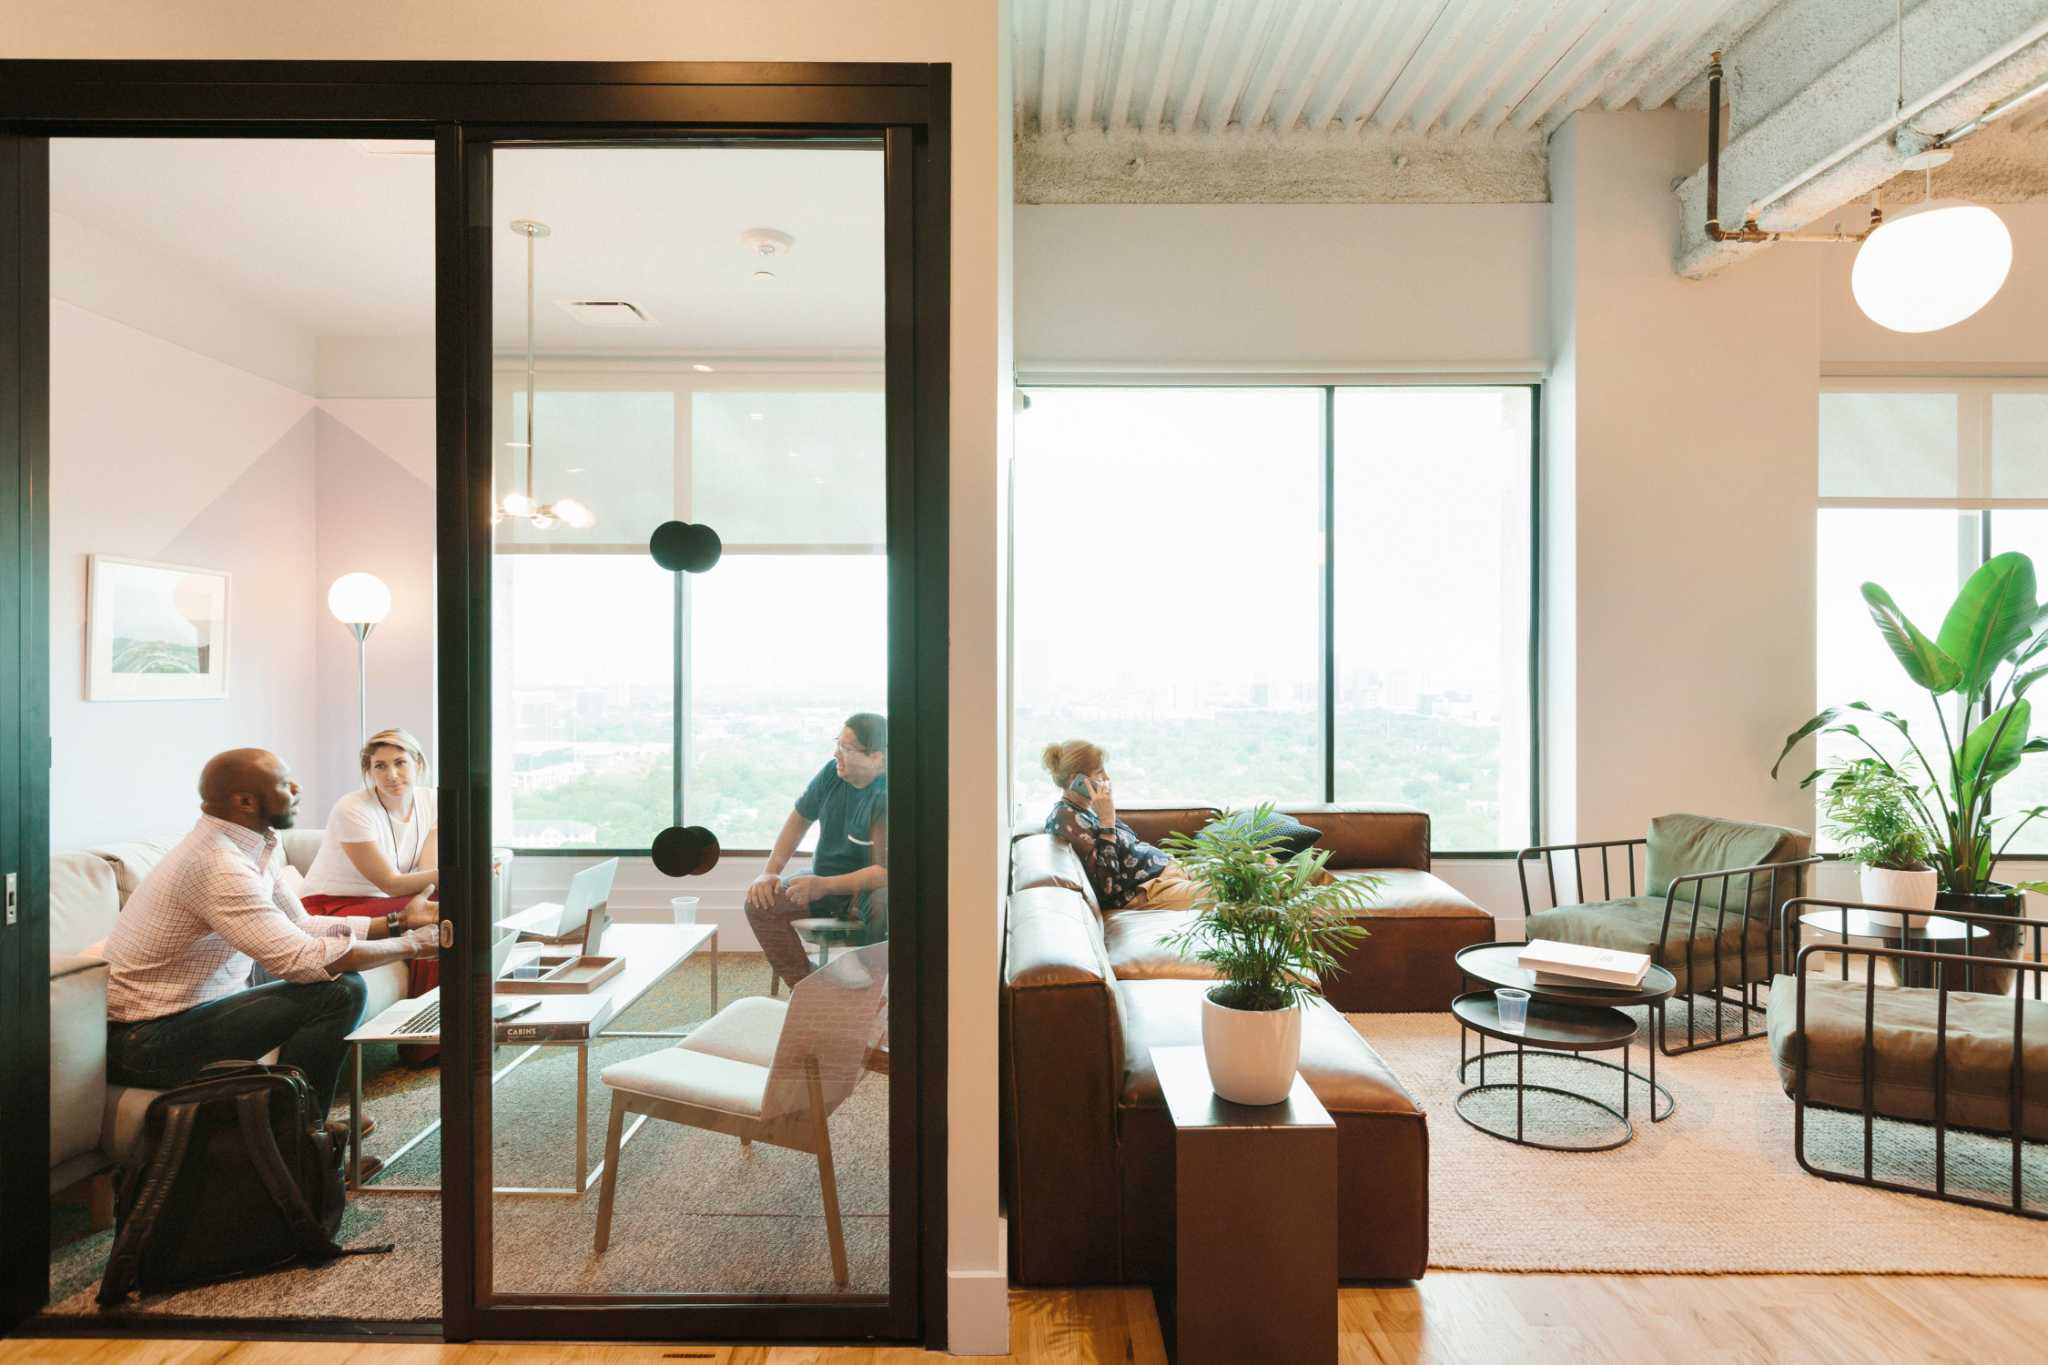 Comment: The pandemic should be WeWork's moment